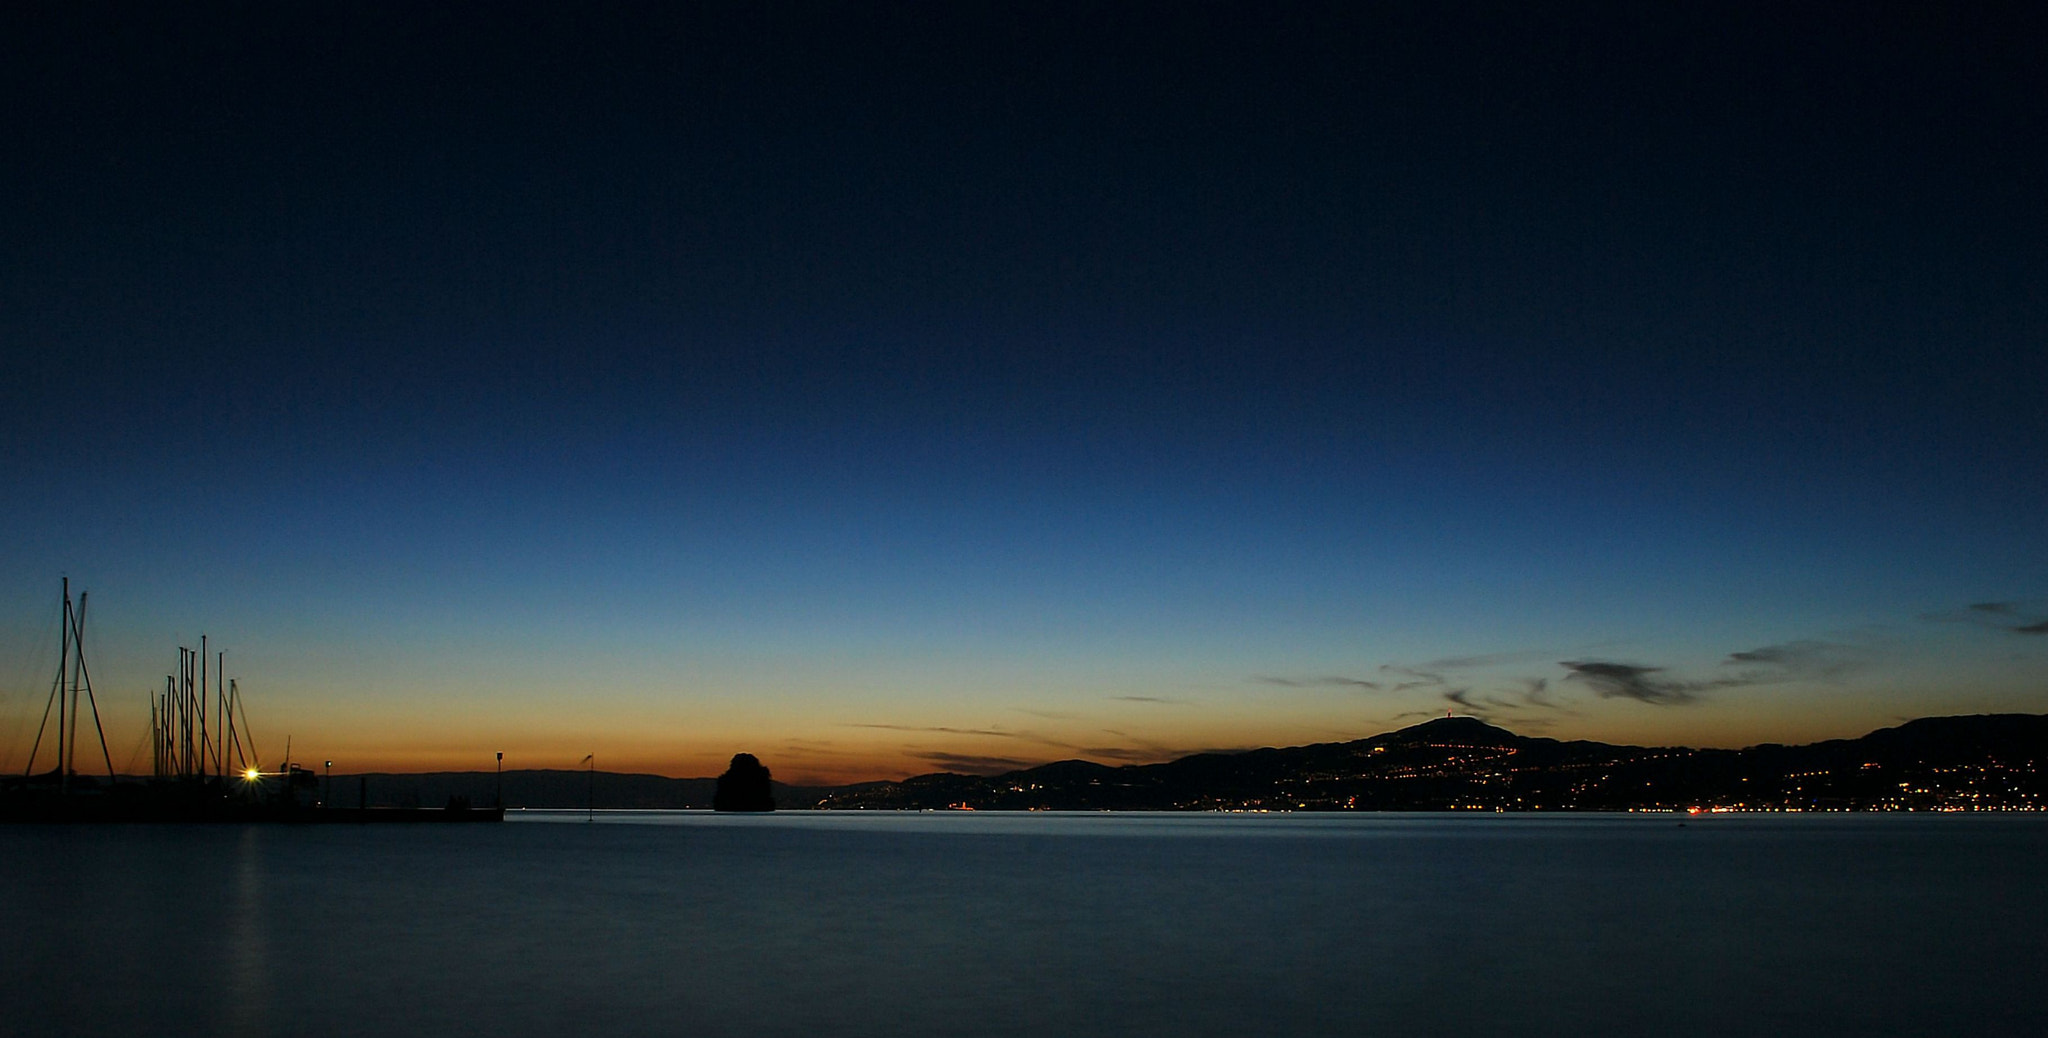 Photograph Lake at night by Fabio Kan on 500px